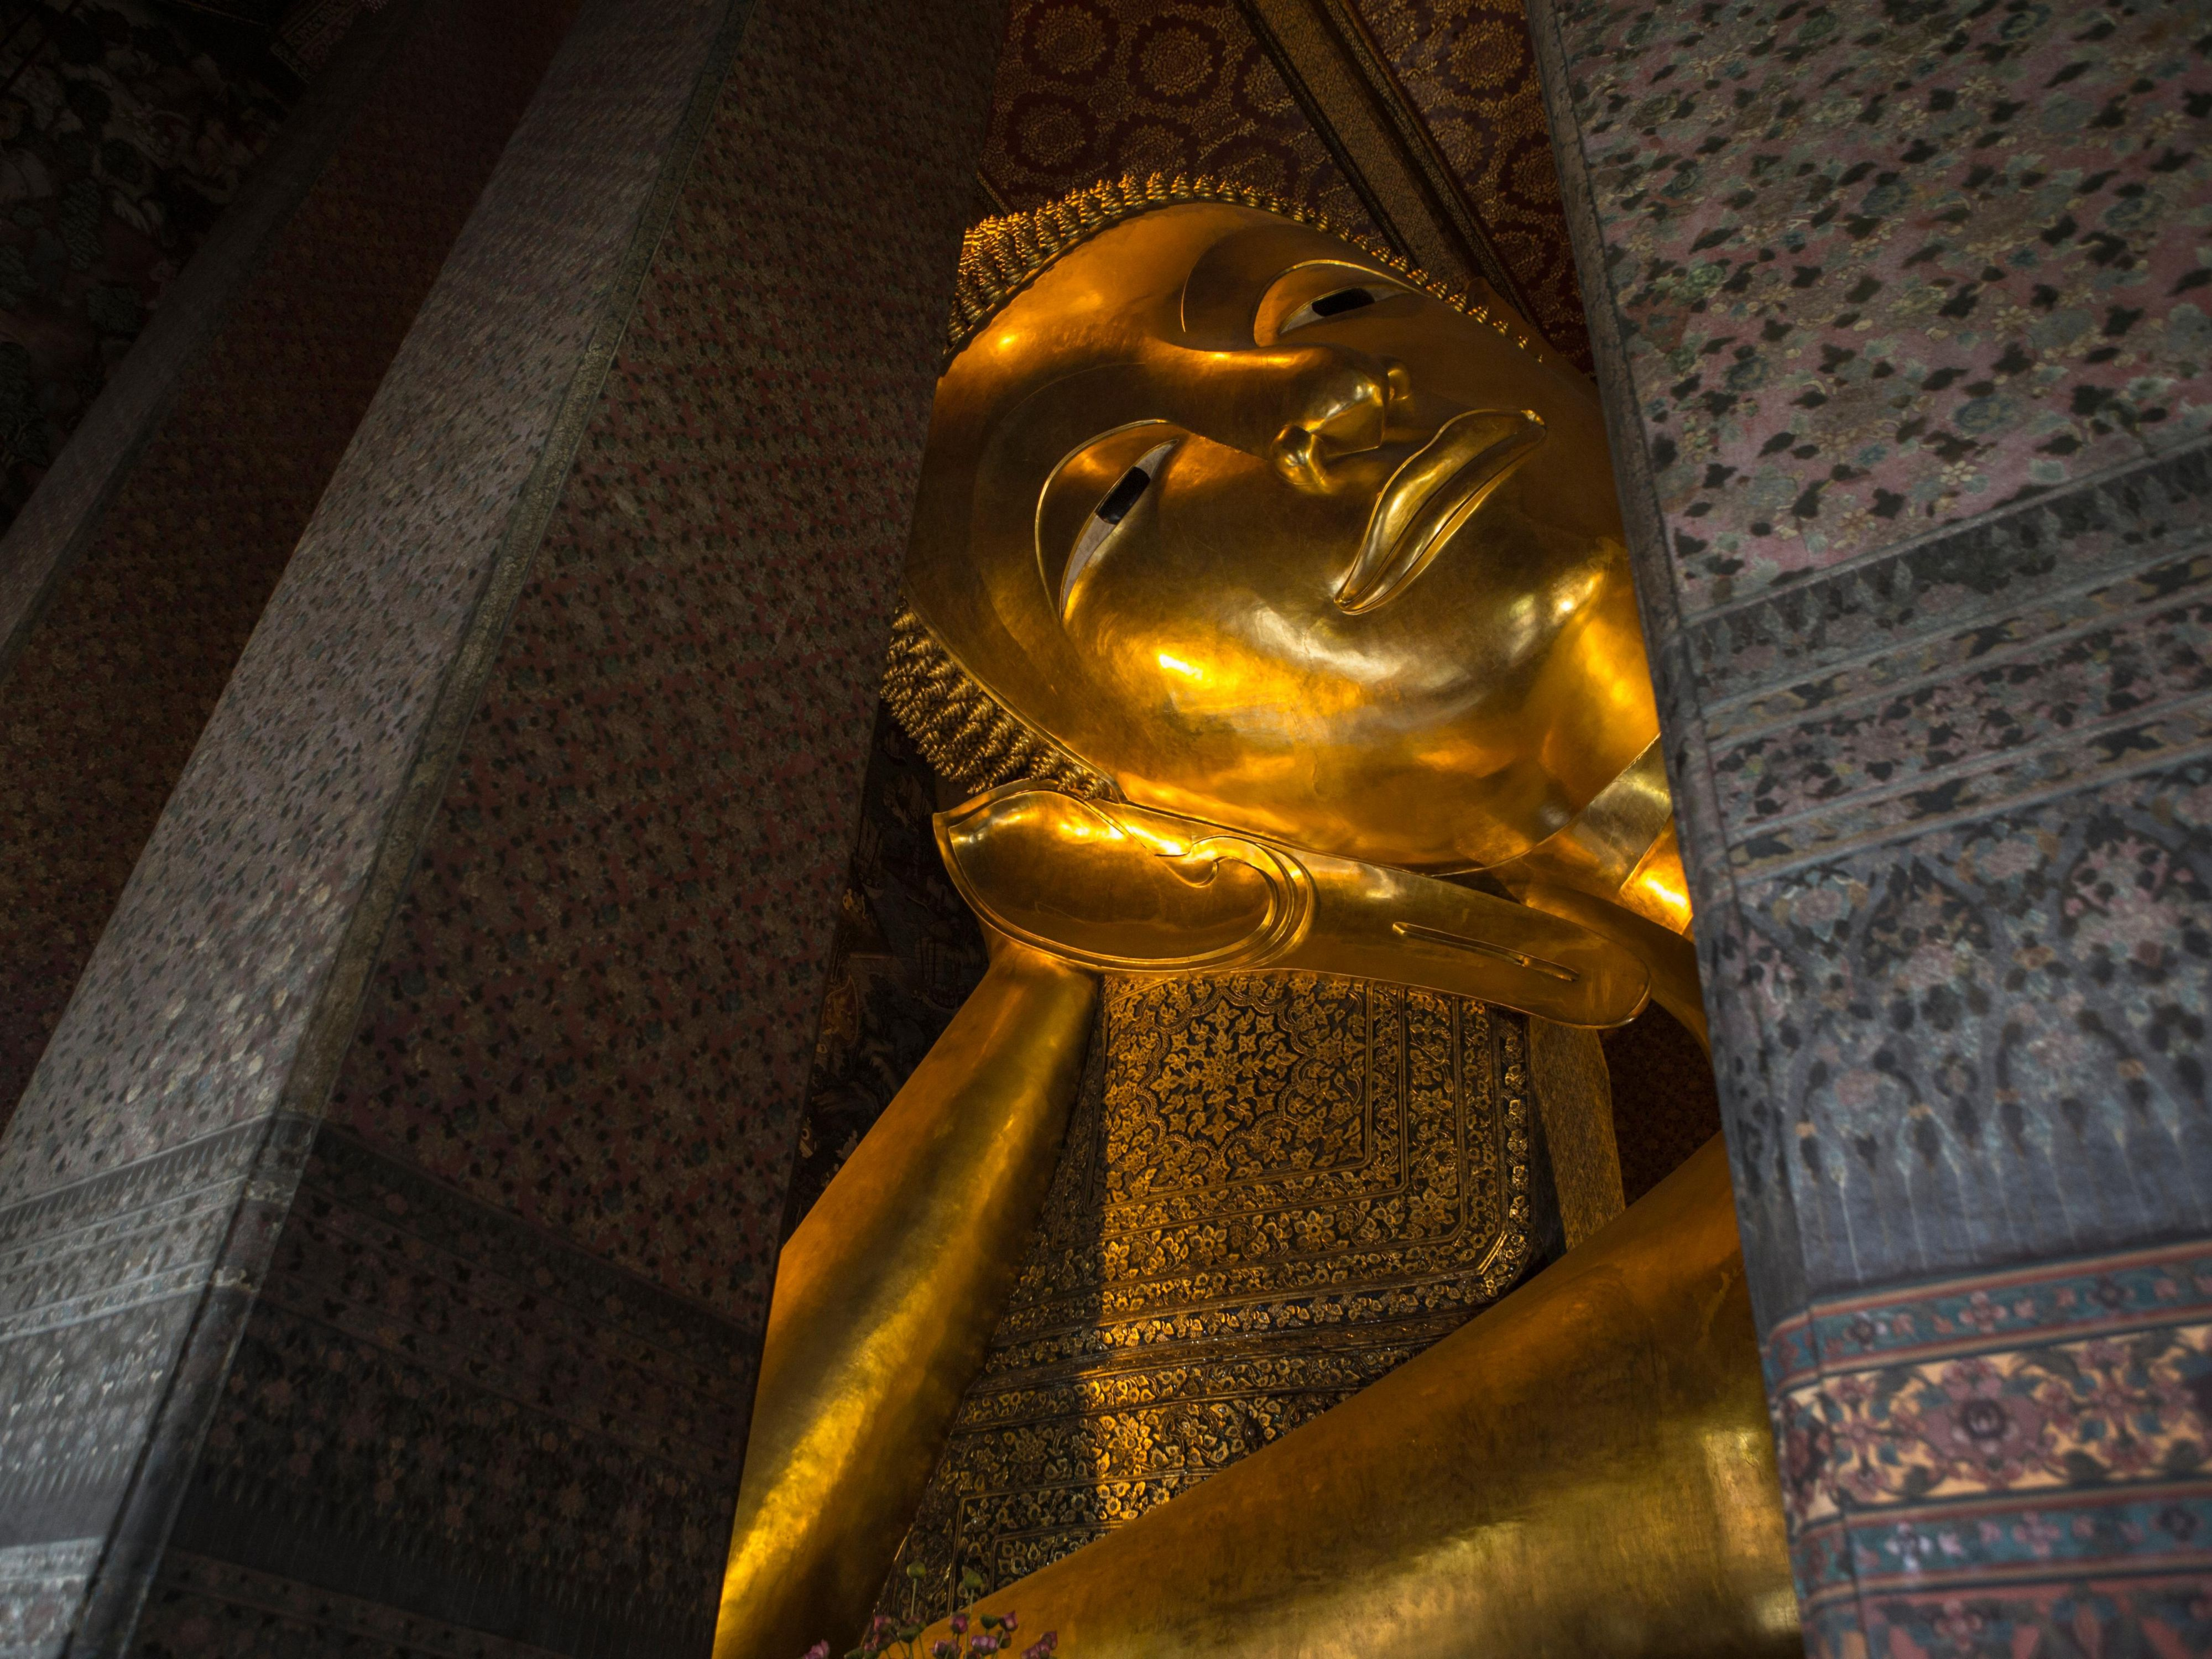 Area Attractions - Wat Pho or Temple of the Reclining Buddha